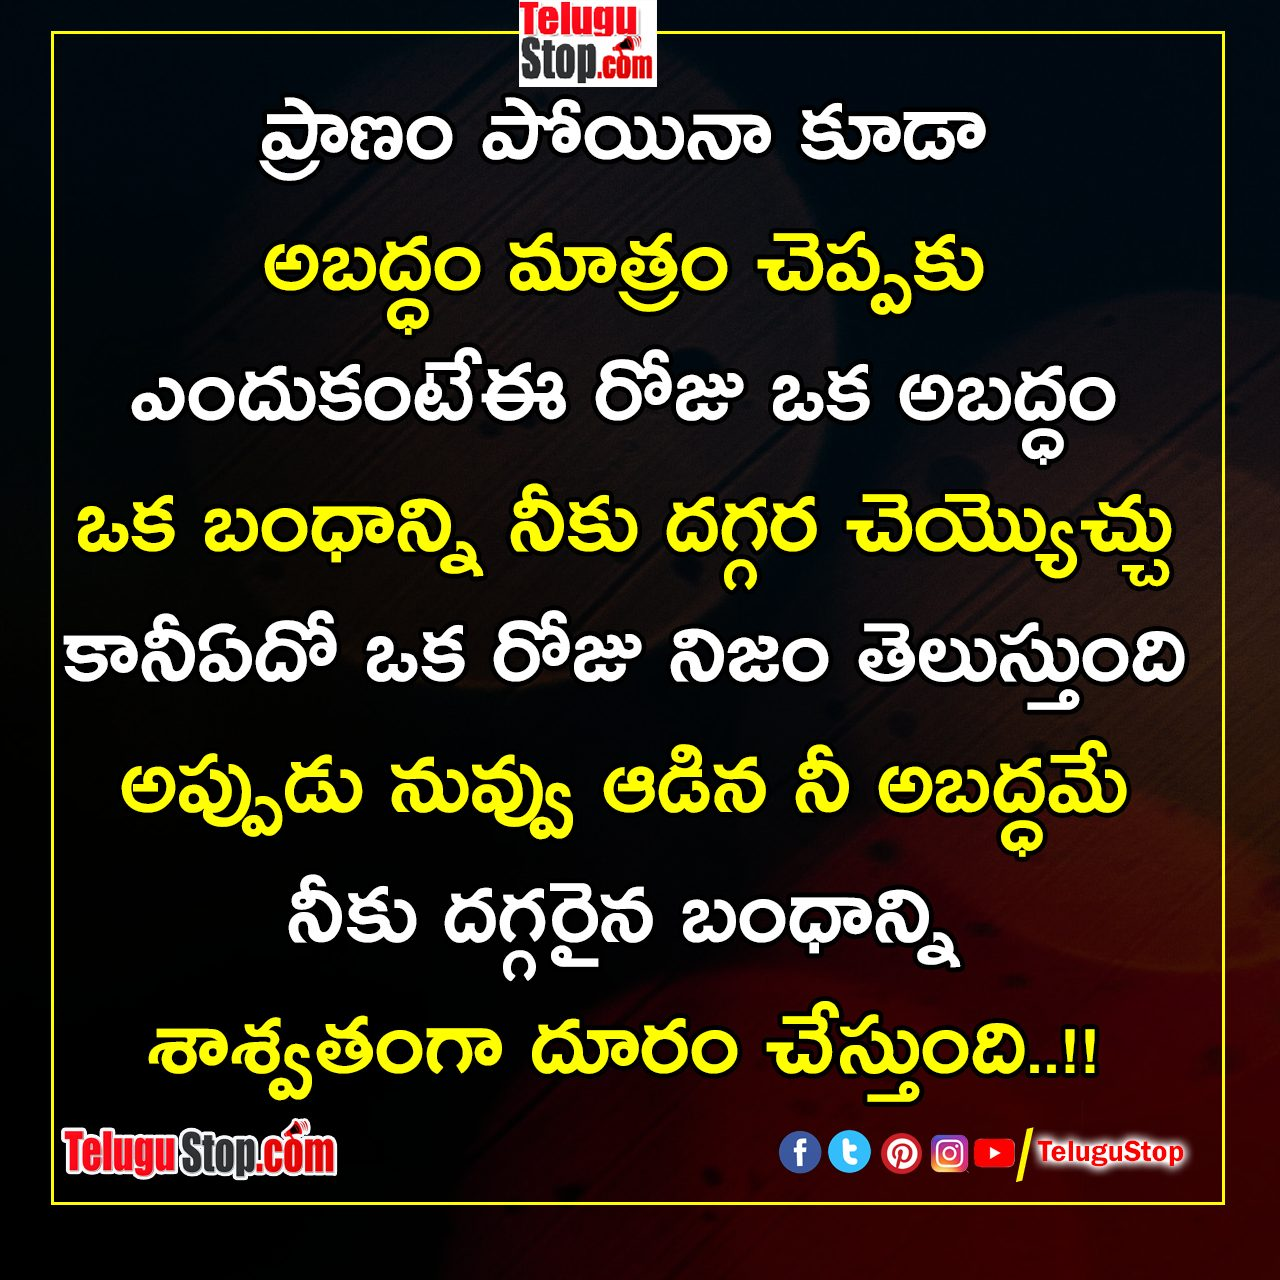 Telugu Broken Bonds Inspirational Quotes, Fresh Start Inspirational Quotes, The Goodness That Is In Us Brings Hardship Inspiriational Quotes, Your Eyes Speak Inspiriational Quotes-Telugu Daily Quotes - Inspirational/Motivational/Love/Friendship/Good Morning Quote